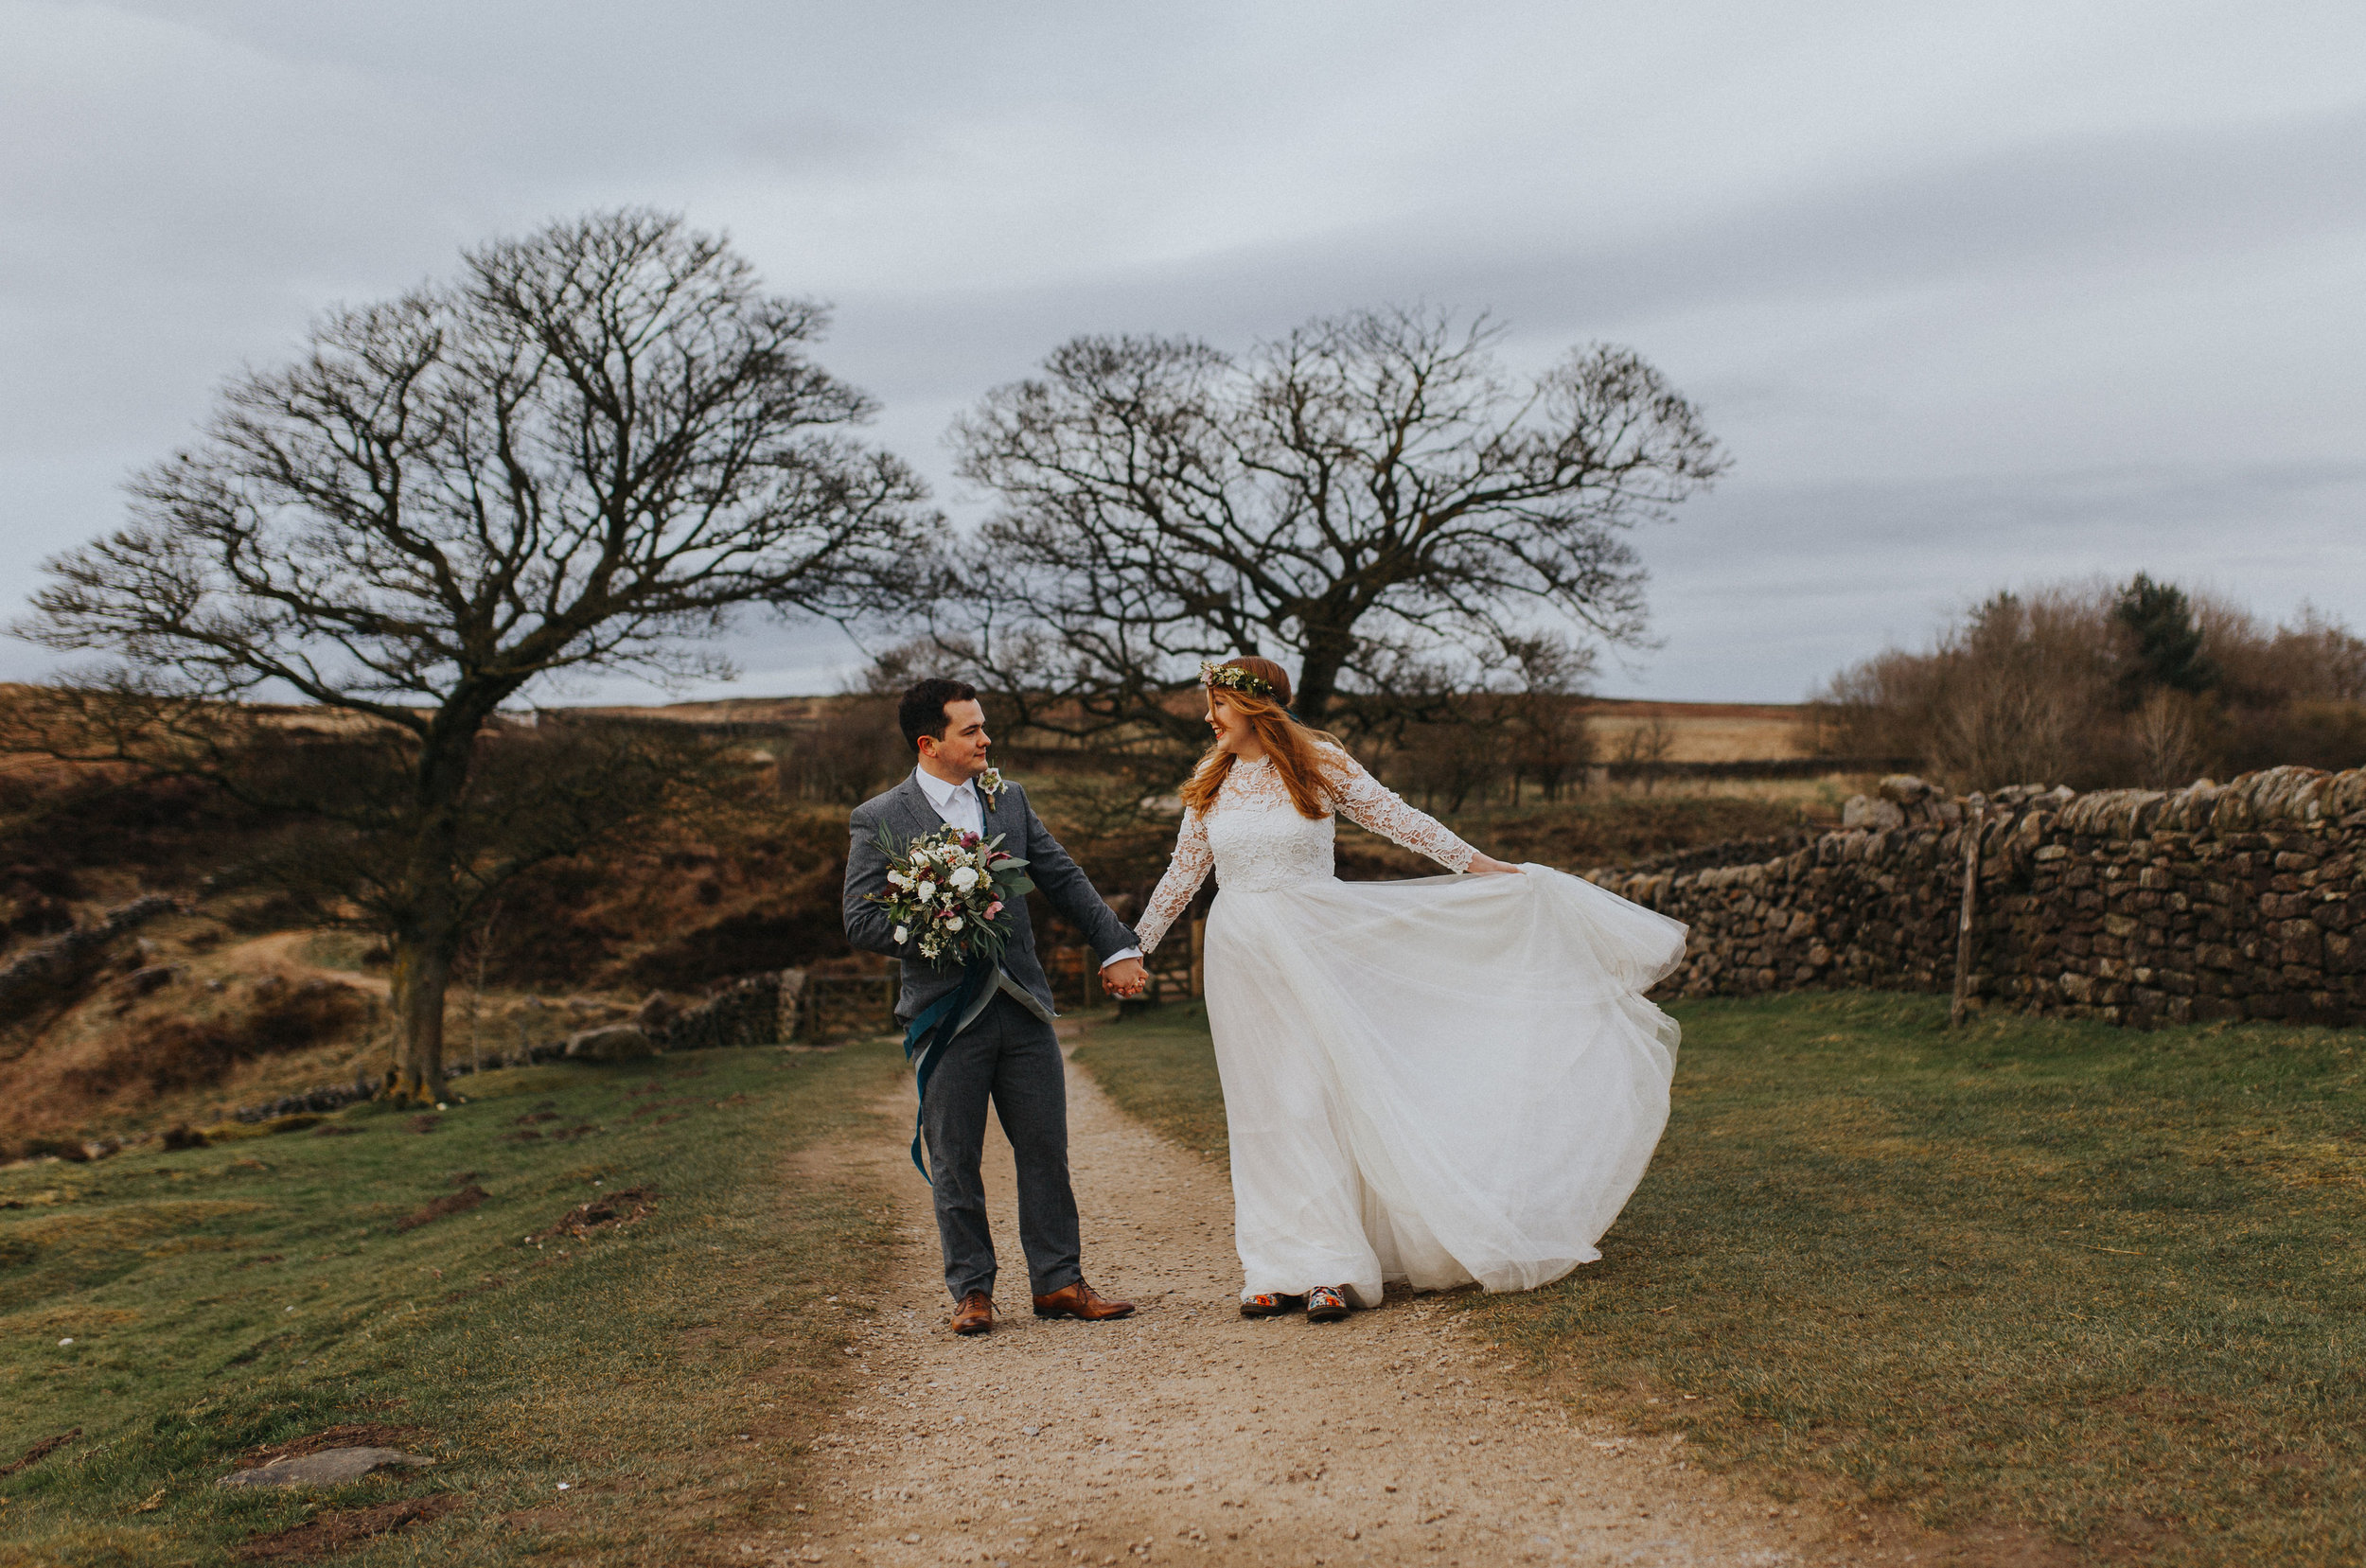 Rosie-peak district-bride-bespoke-long sleeved-lace-tulle-winter-wedding-dress-matlock-susanna-greening-2